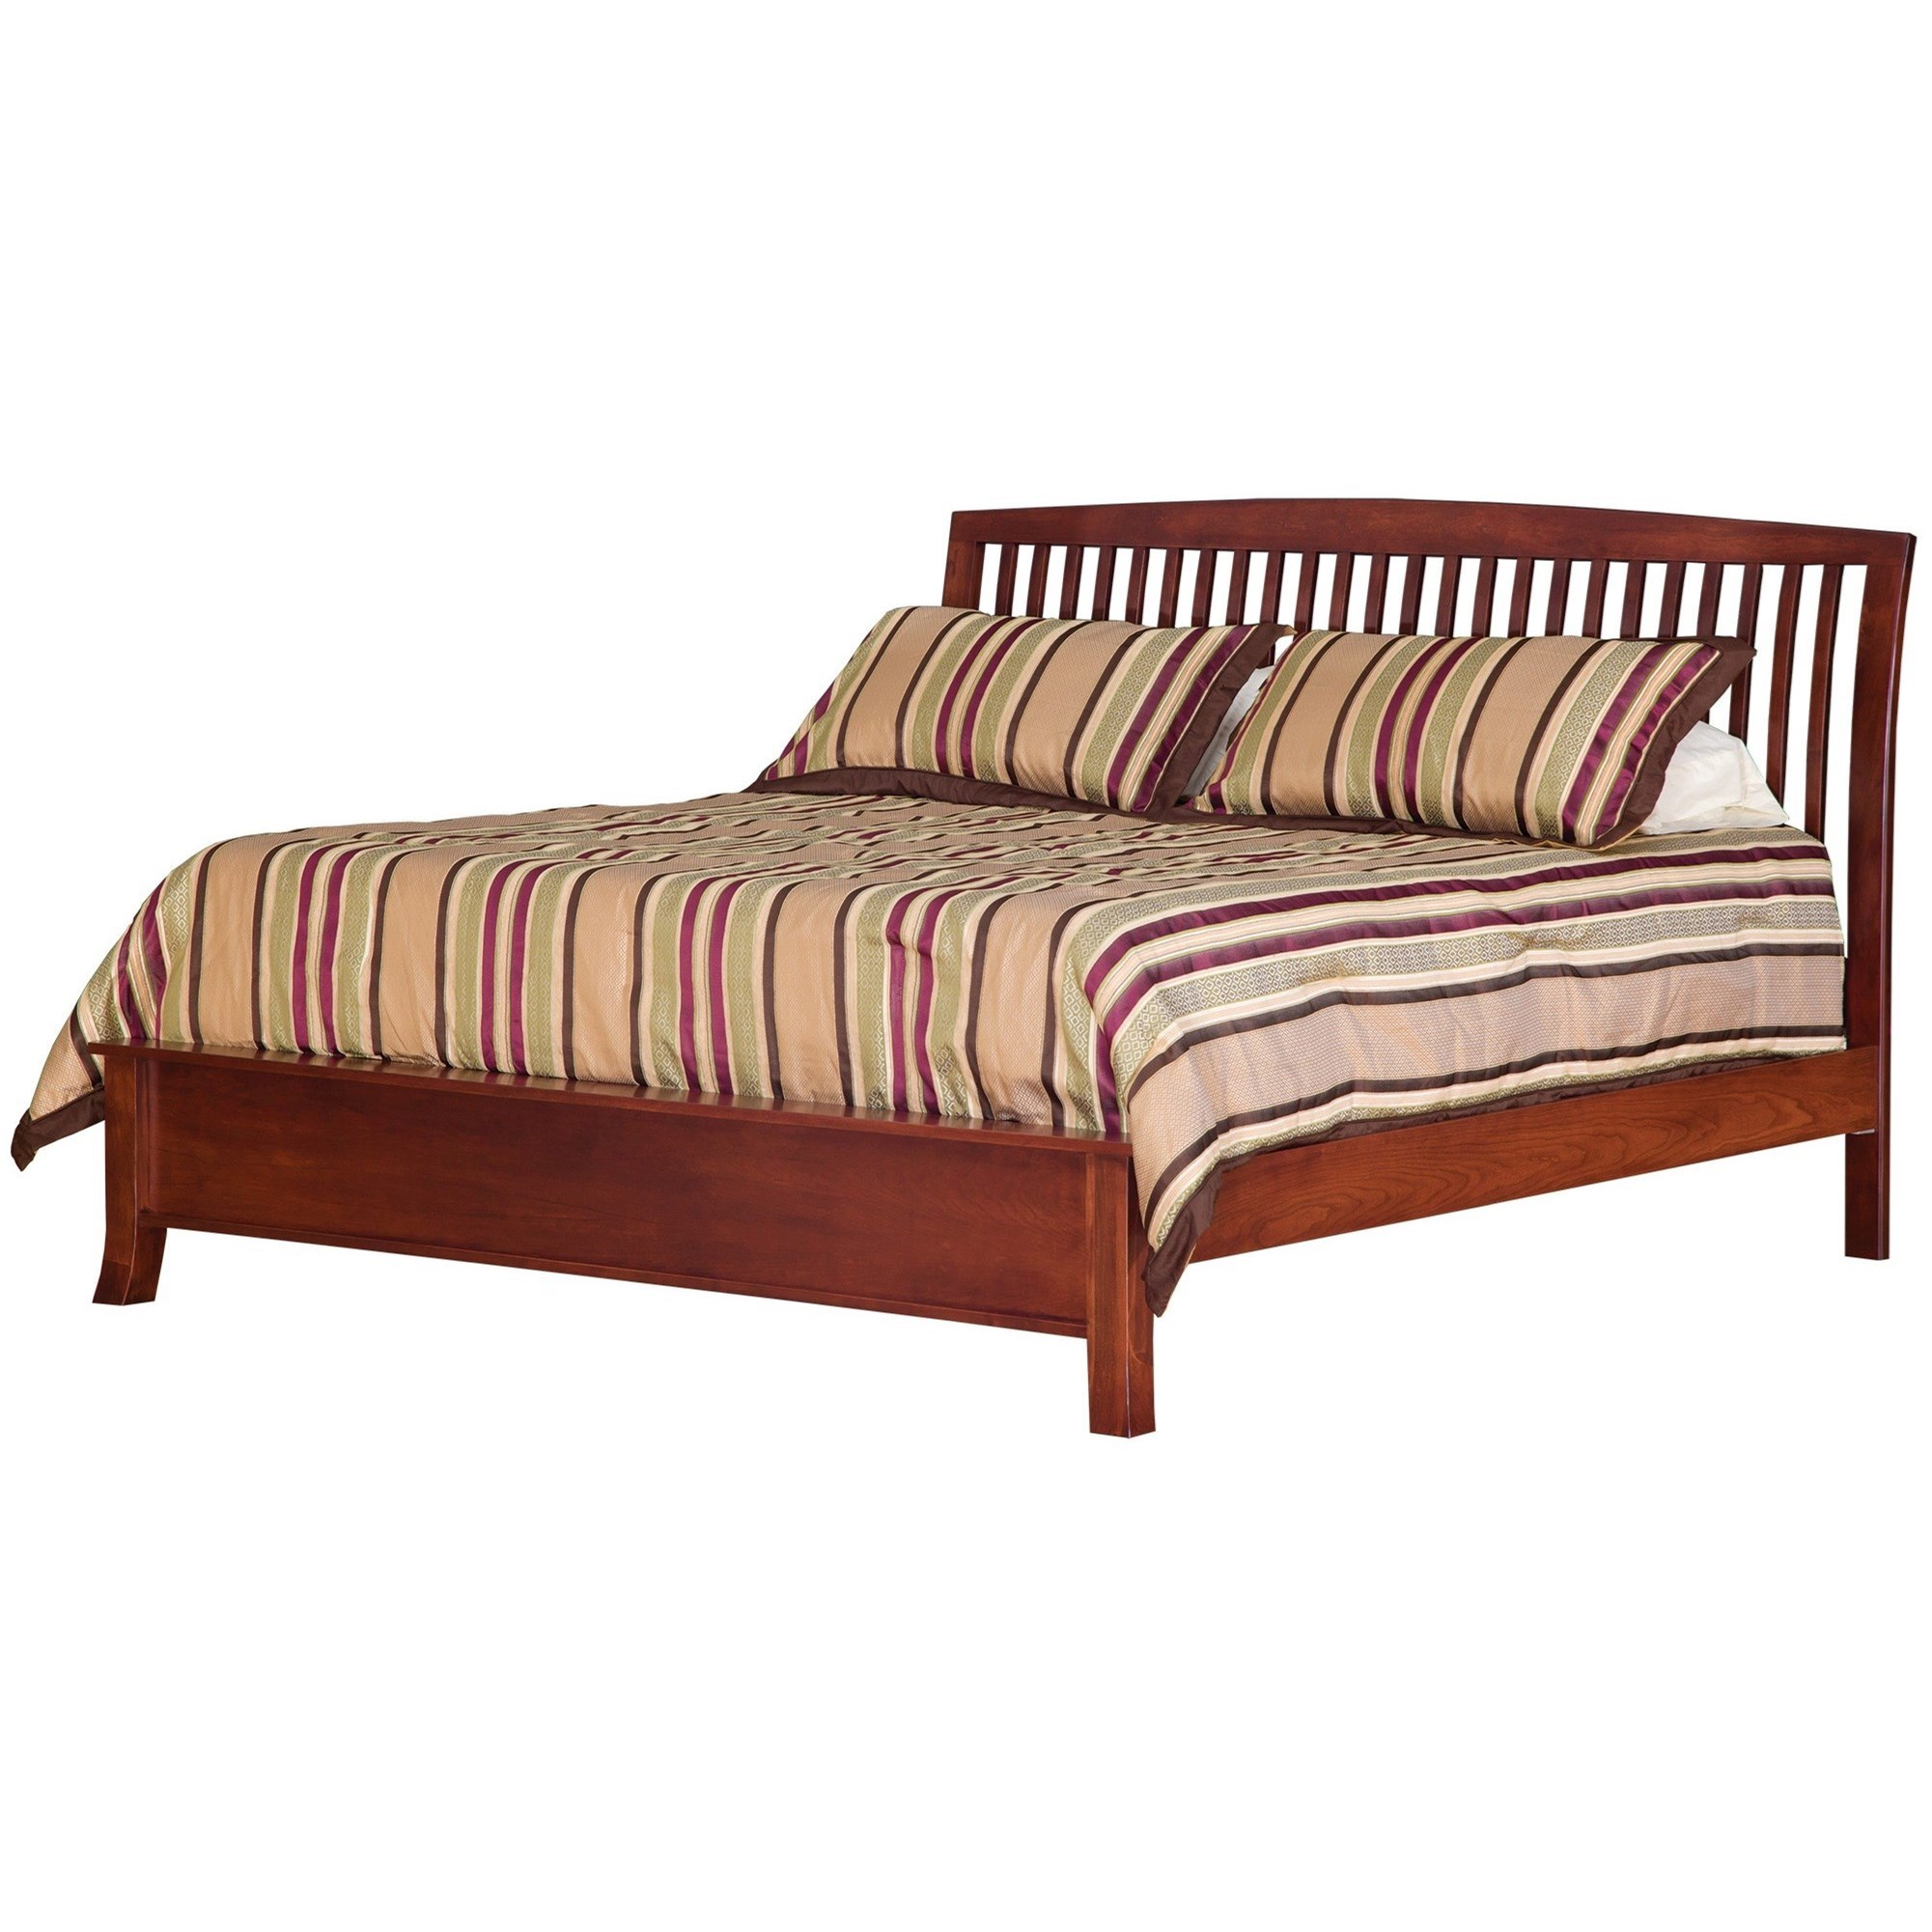 Danielu0027s Amish HolmesKing Bed